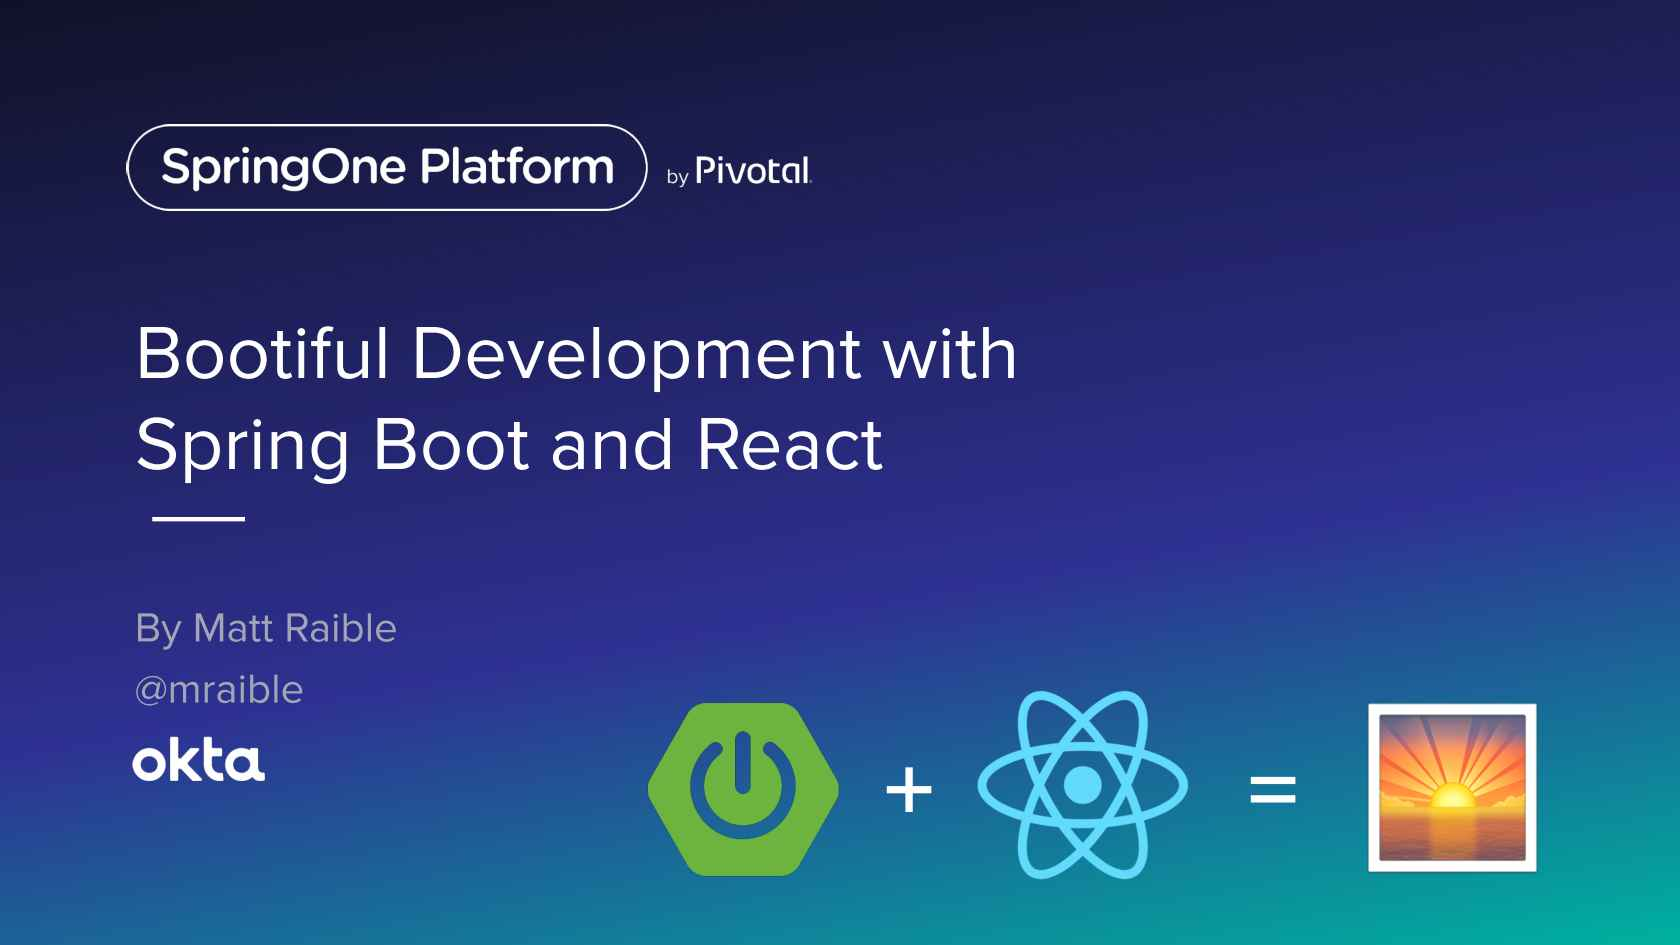 Bootiful Development with Spring Boot and React